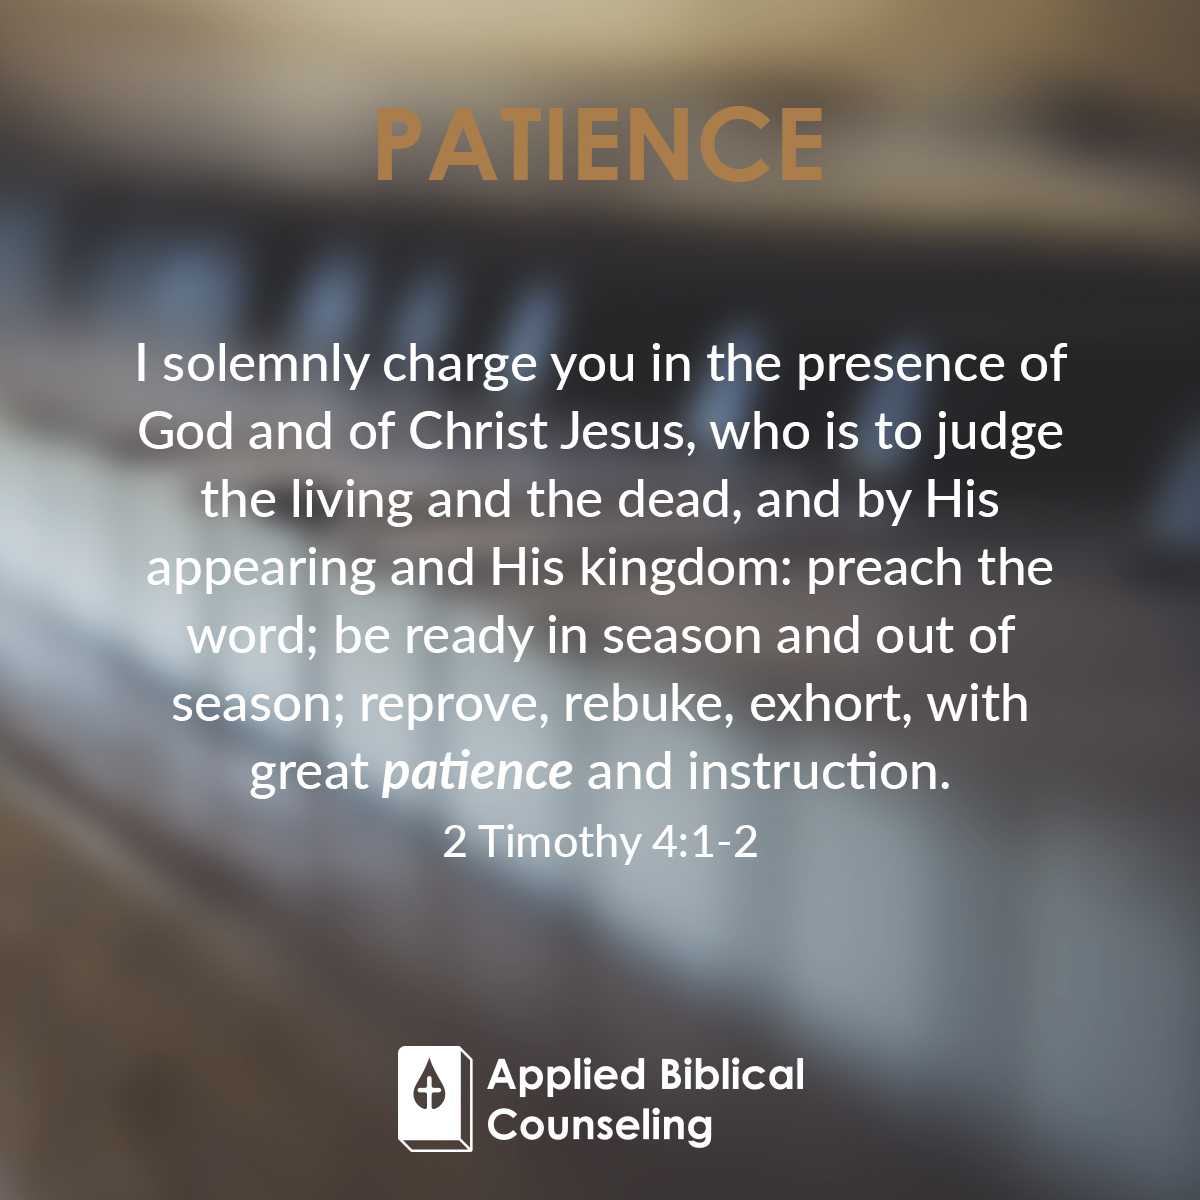 Applied Biblical Counseling Facebook w26 Patience 4